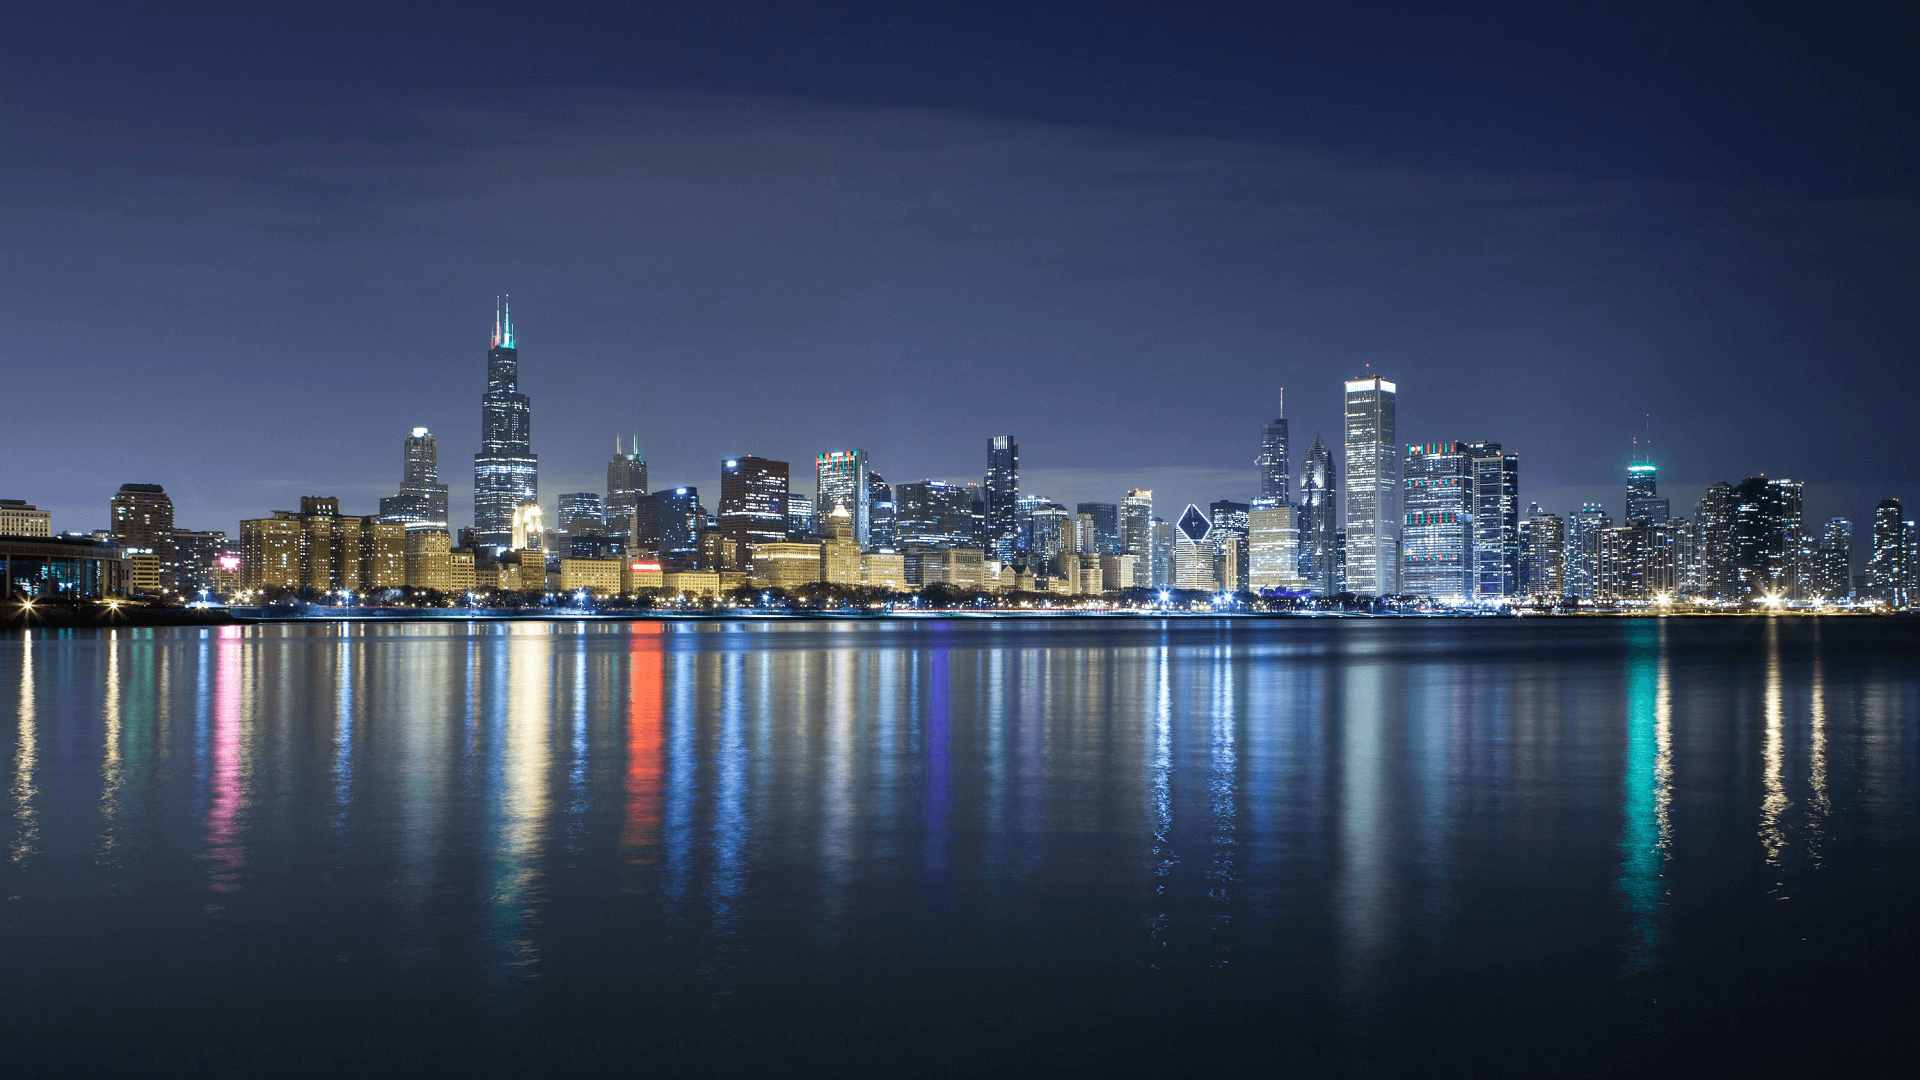 Chicago skyline wallpapers top free chicago skyline backgrounds wallpaperaccess - Chicago skyline wallpaper 1920x1080 ...